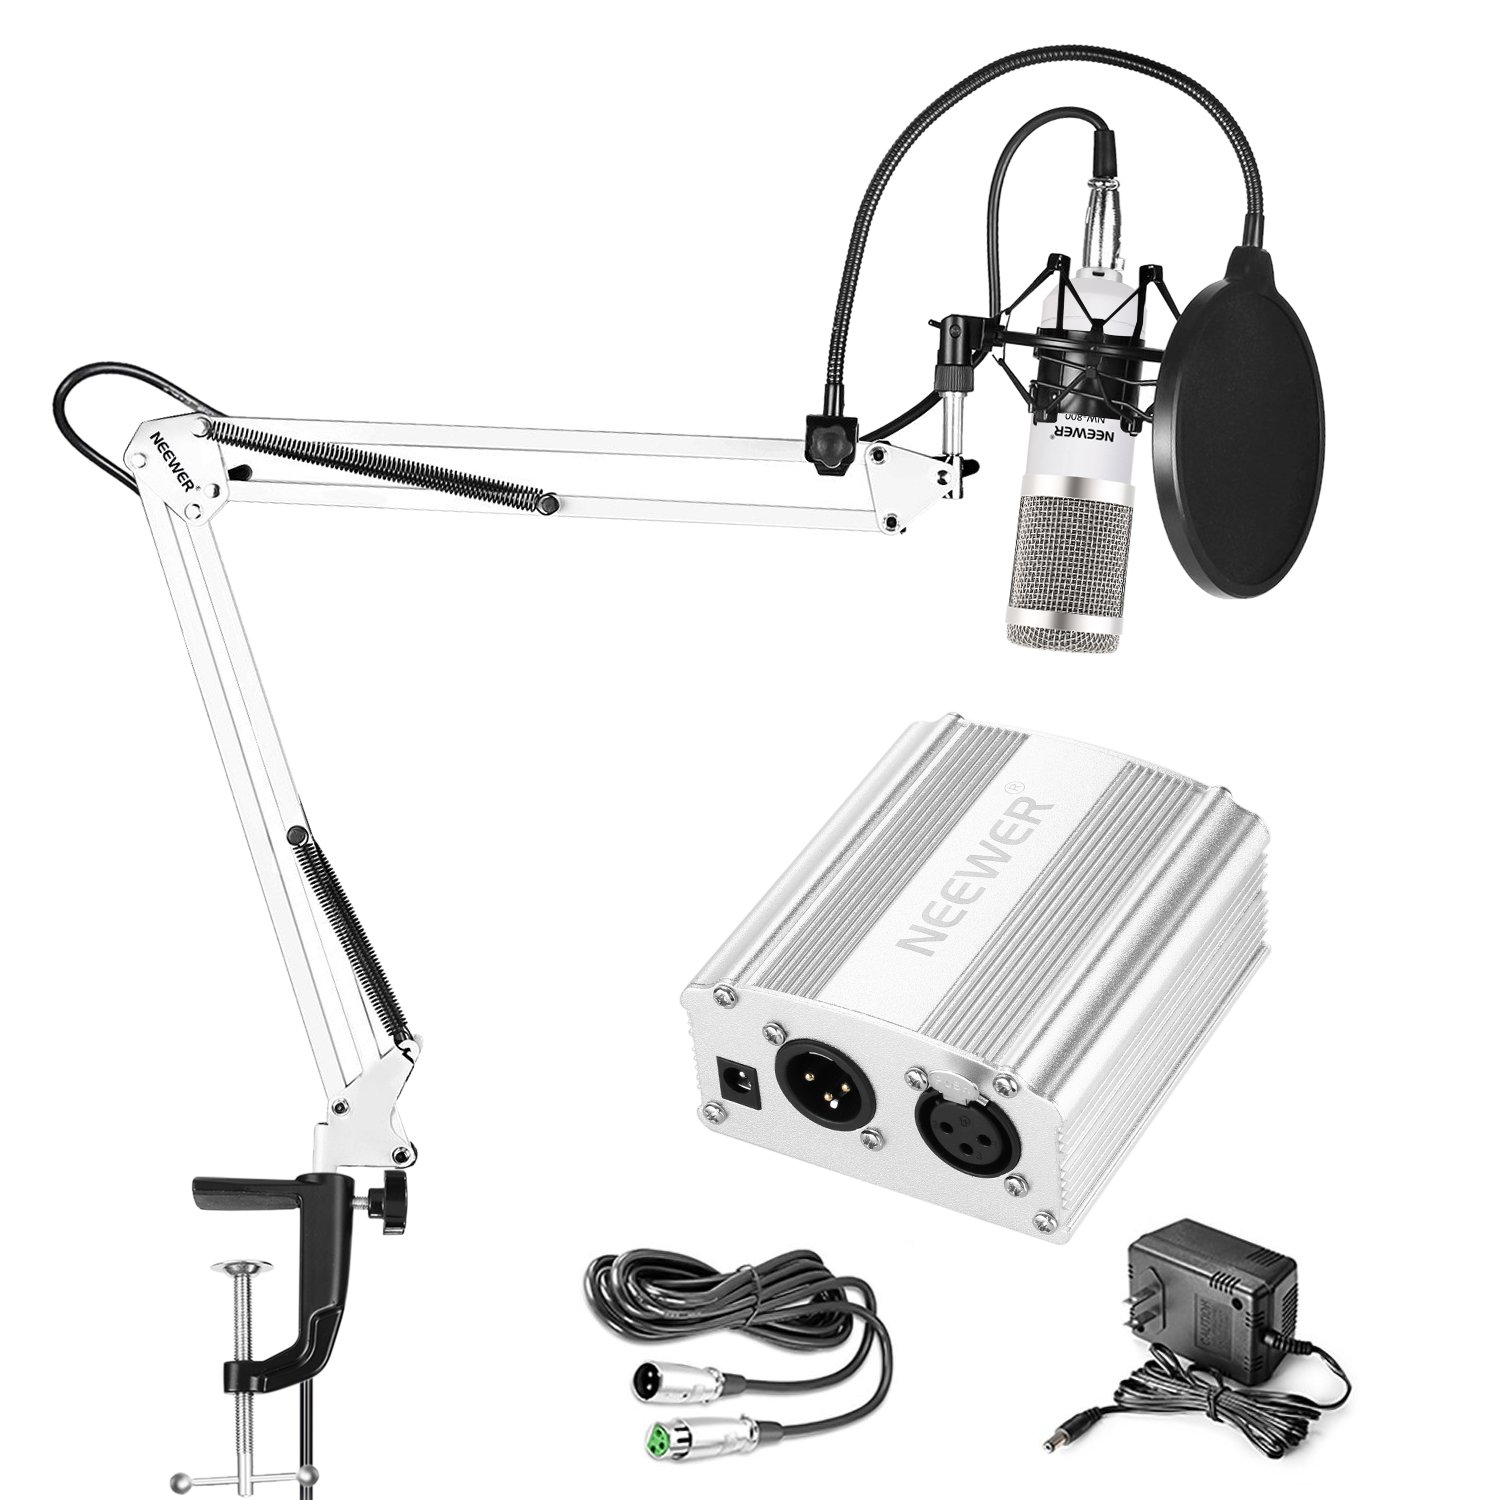 Neewer Condenser Microphone(White/Silver) Kit Includes Adjustable Suspension Boom Scissor Arm Stand, Shock Mount, Pop Filter, 48V Phantom Power Supply for Radio, Studio, Stage, and TV Stations 40093602